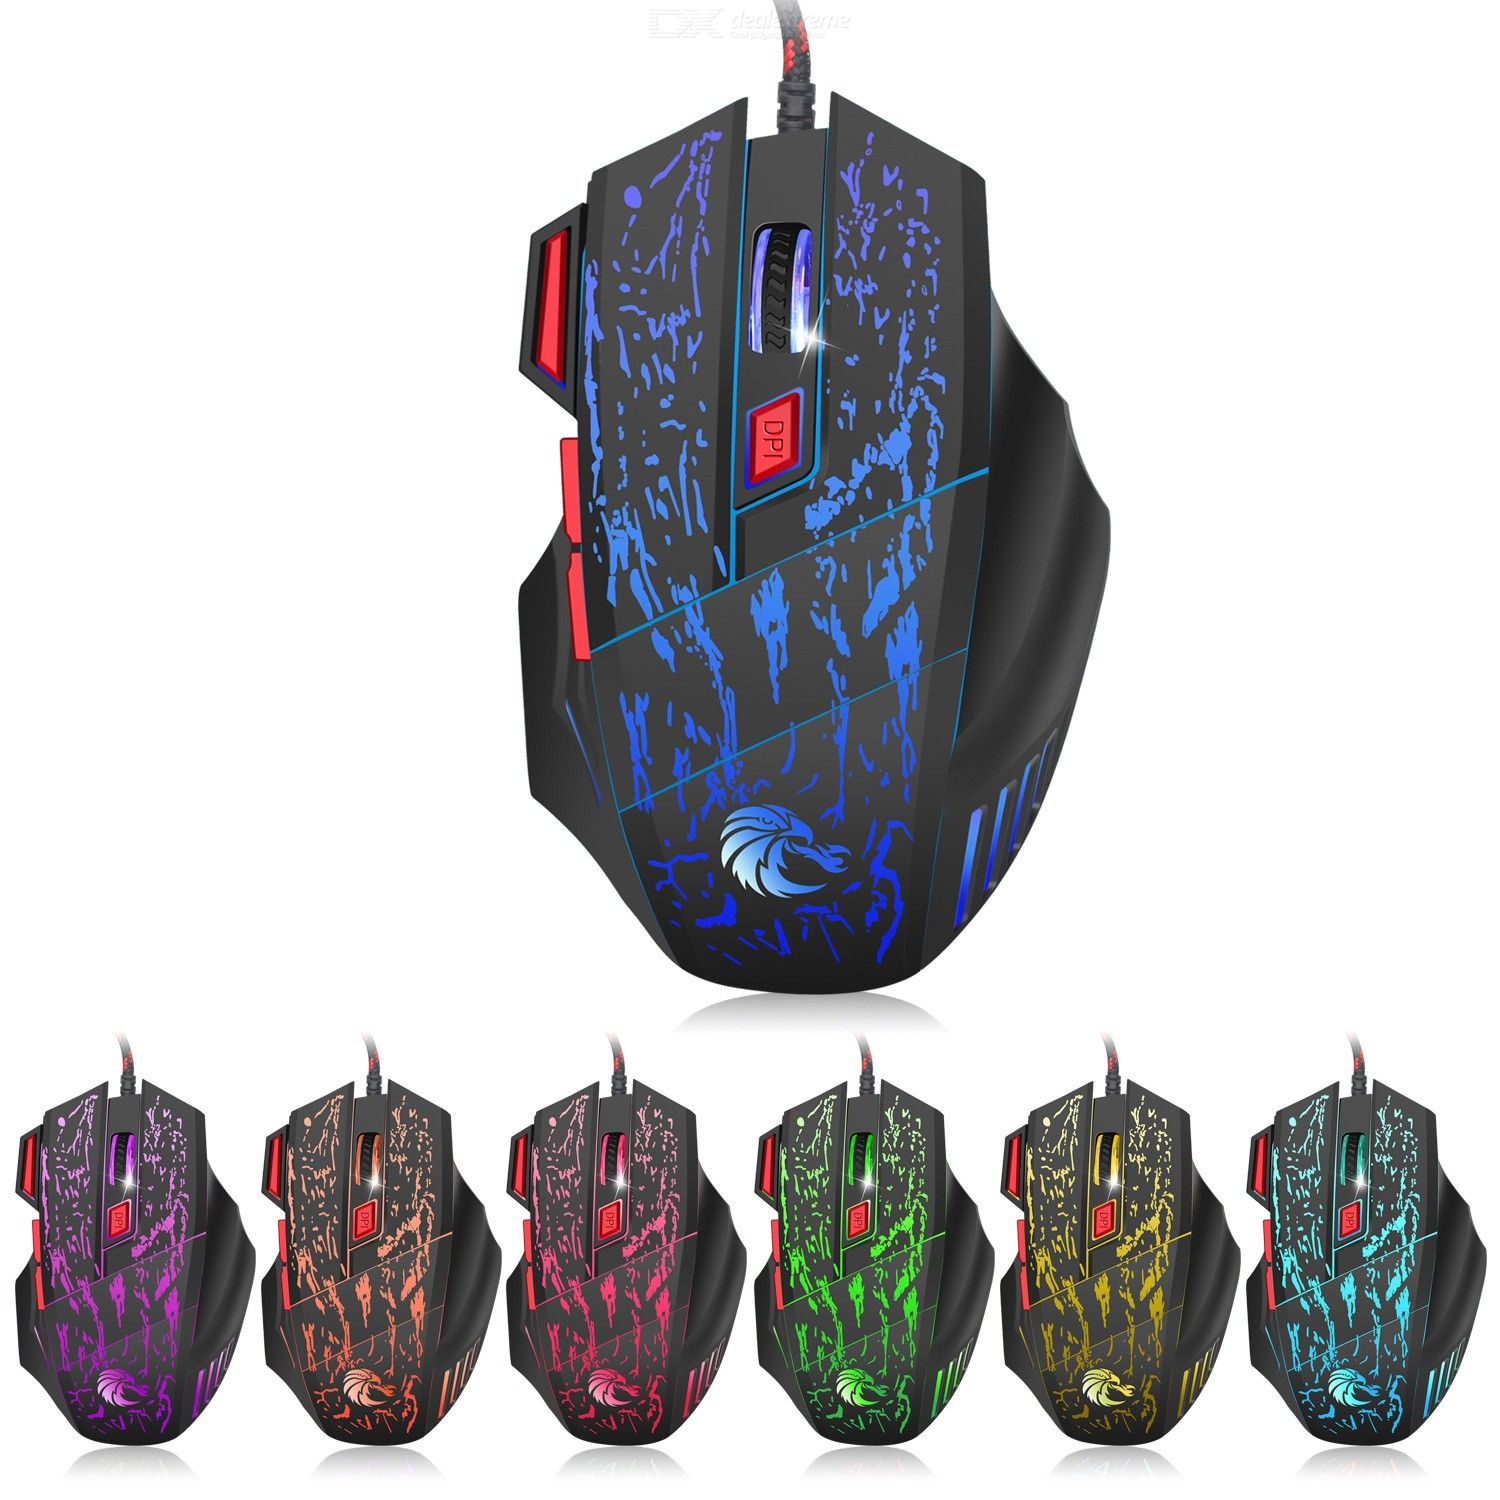 H300 USB 2.0 running water crack colorful luminous gaming mouse 7 button office home mouse 5500dpi gaming optical mouse